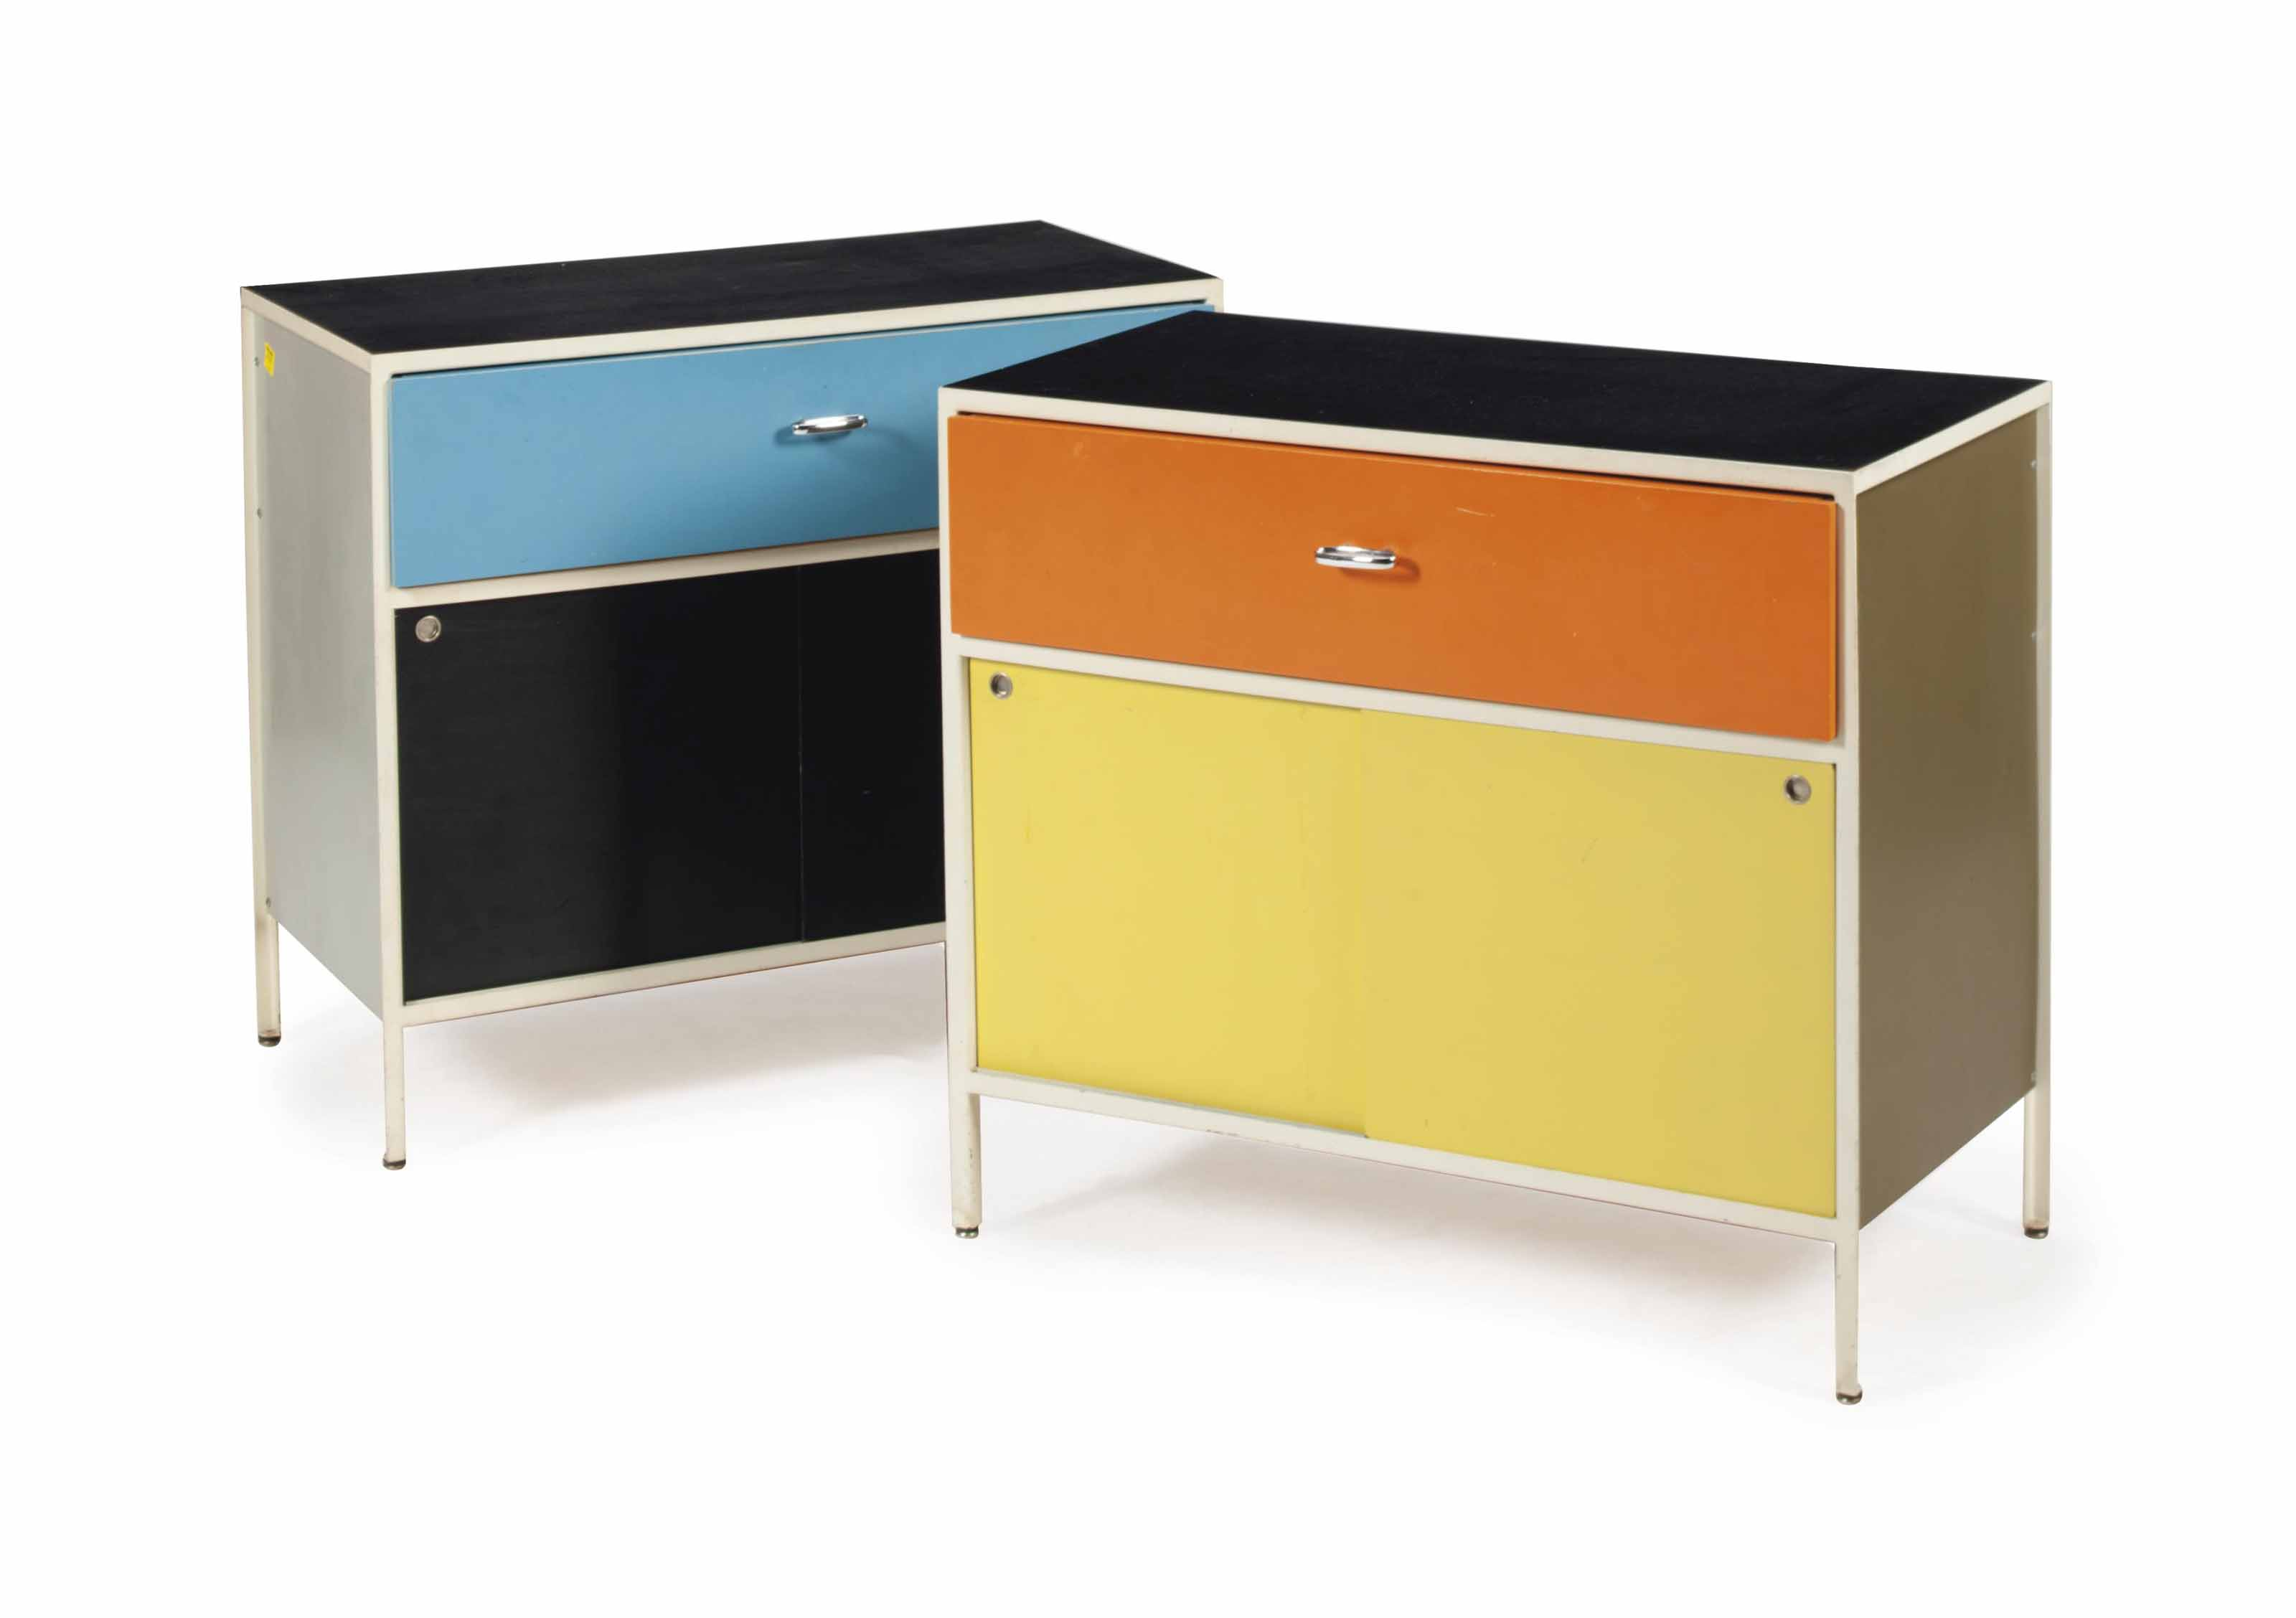 A PAIR OF WHITE ENAMELED-STEEL AND LACQUERED-WOOD 'MODEL 4035' SIDE CABINETS,